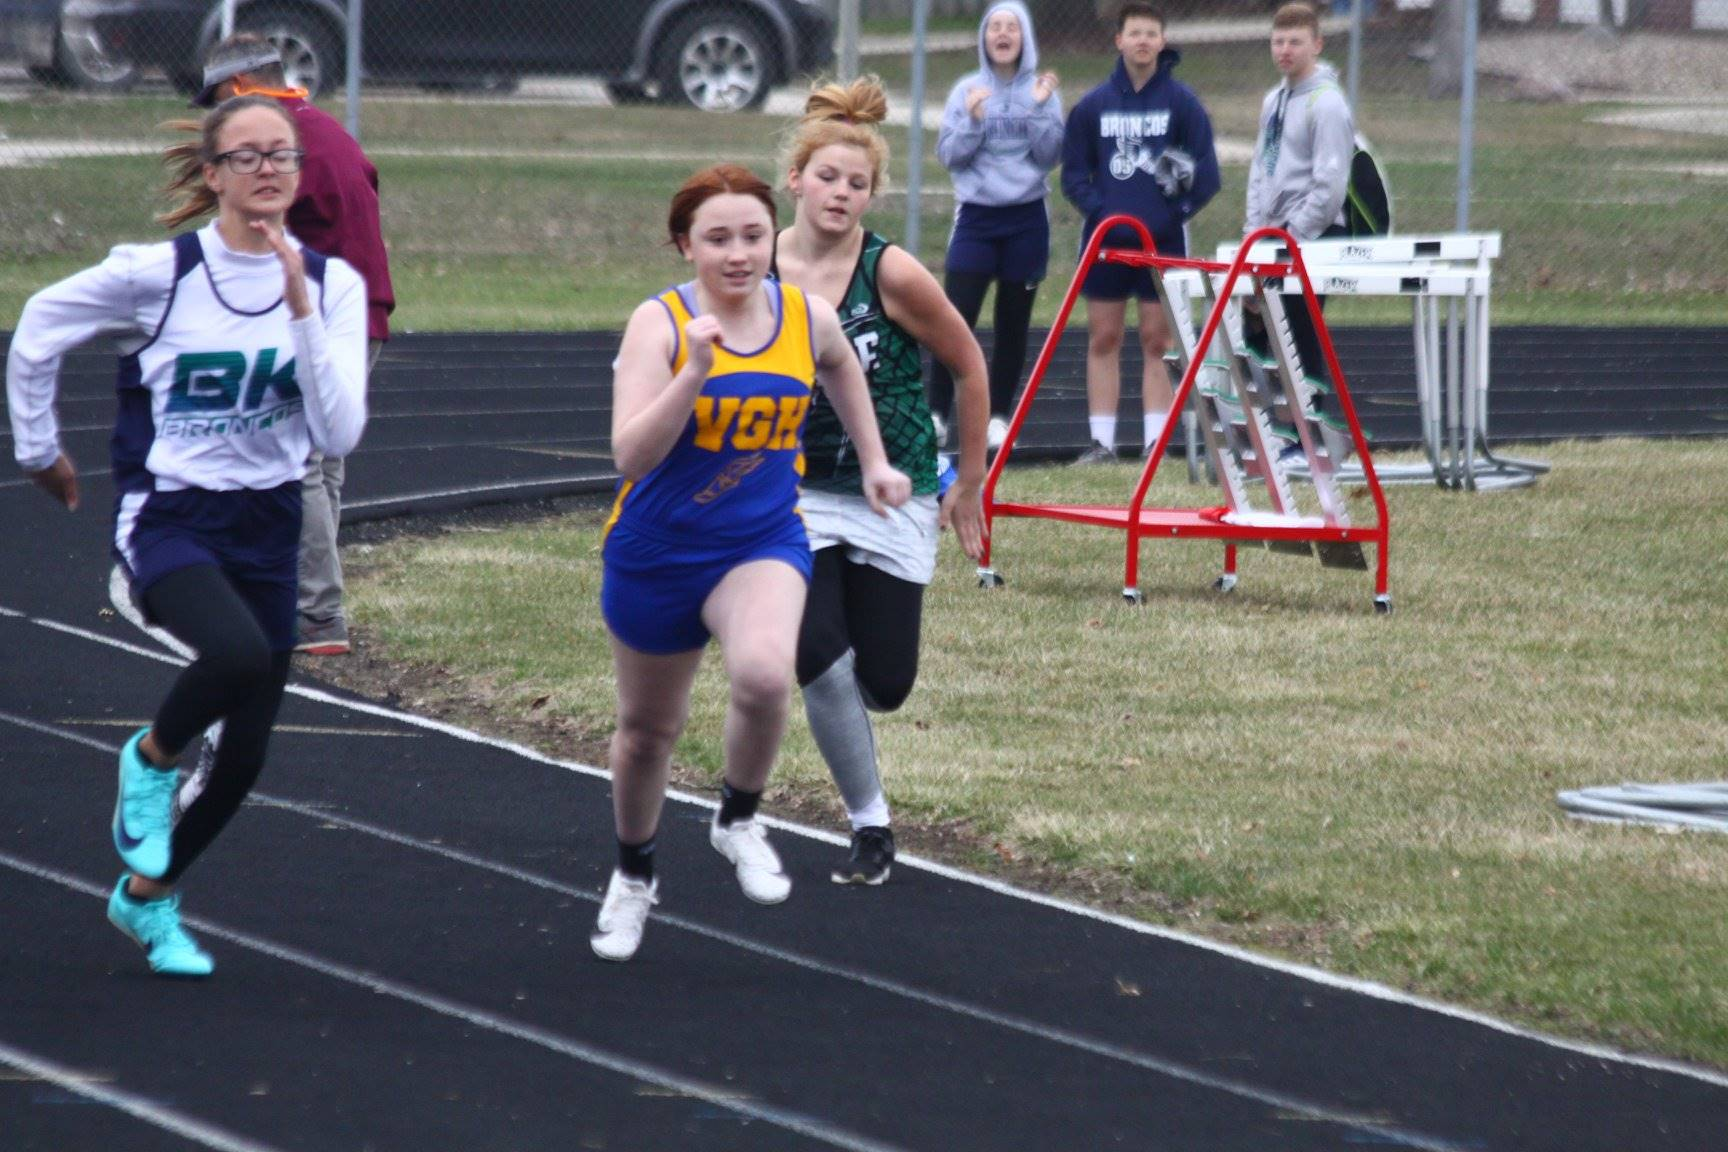 Three middle school girls running in a track meet